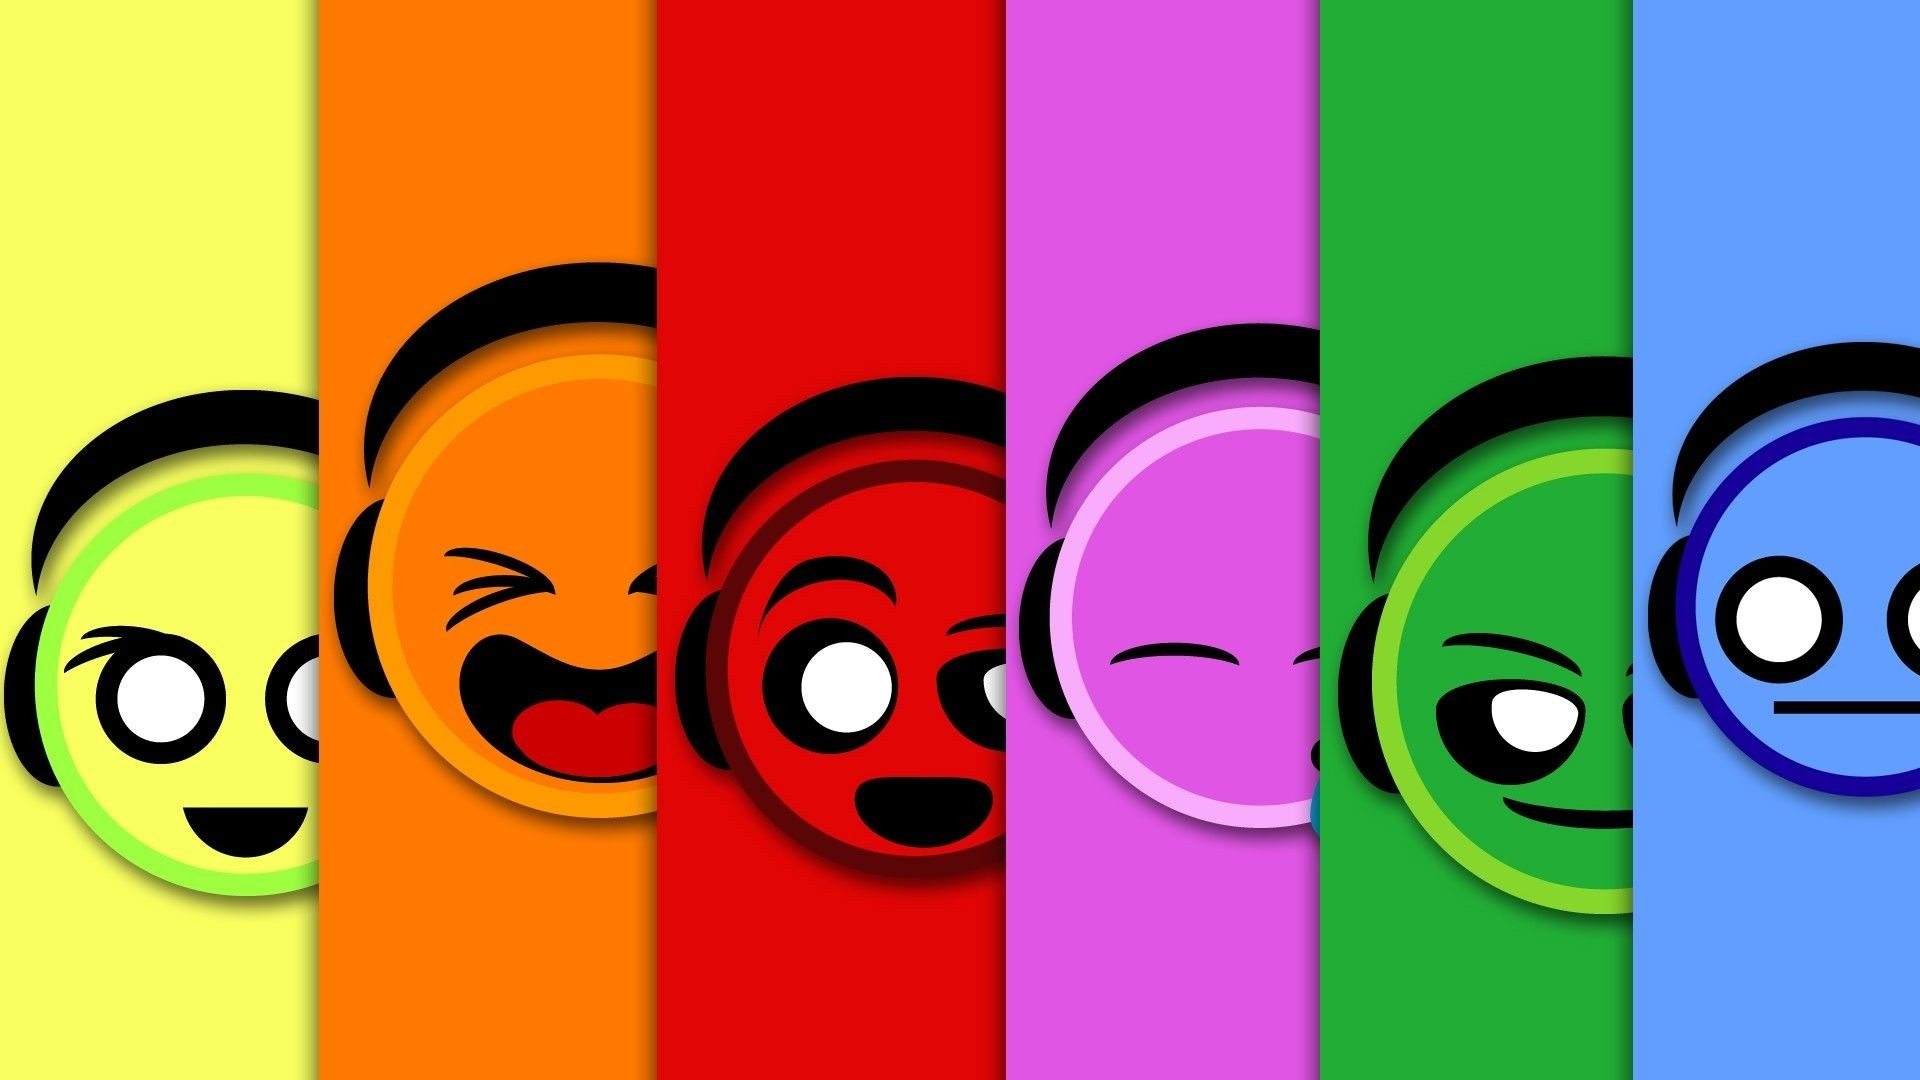 Colorful Smiley Faces | Sooo Cute & Lovely ♥♥♥ | Pinterest intended for Colorful Smiley Faces Backgrounds 30574